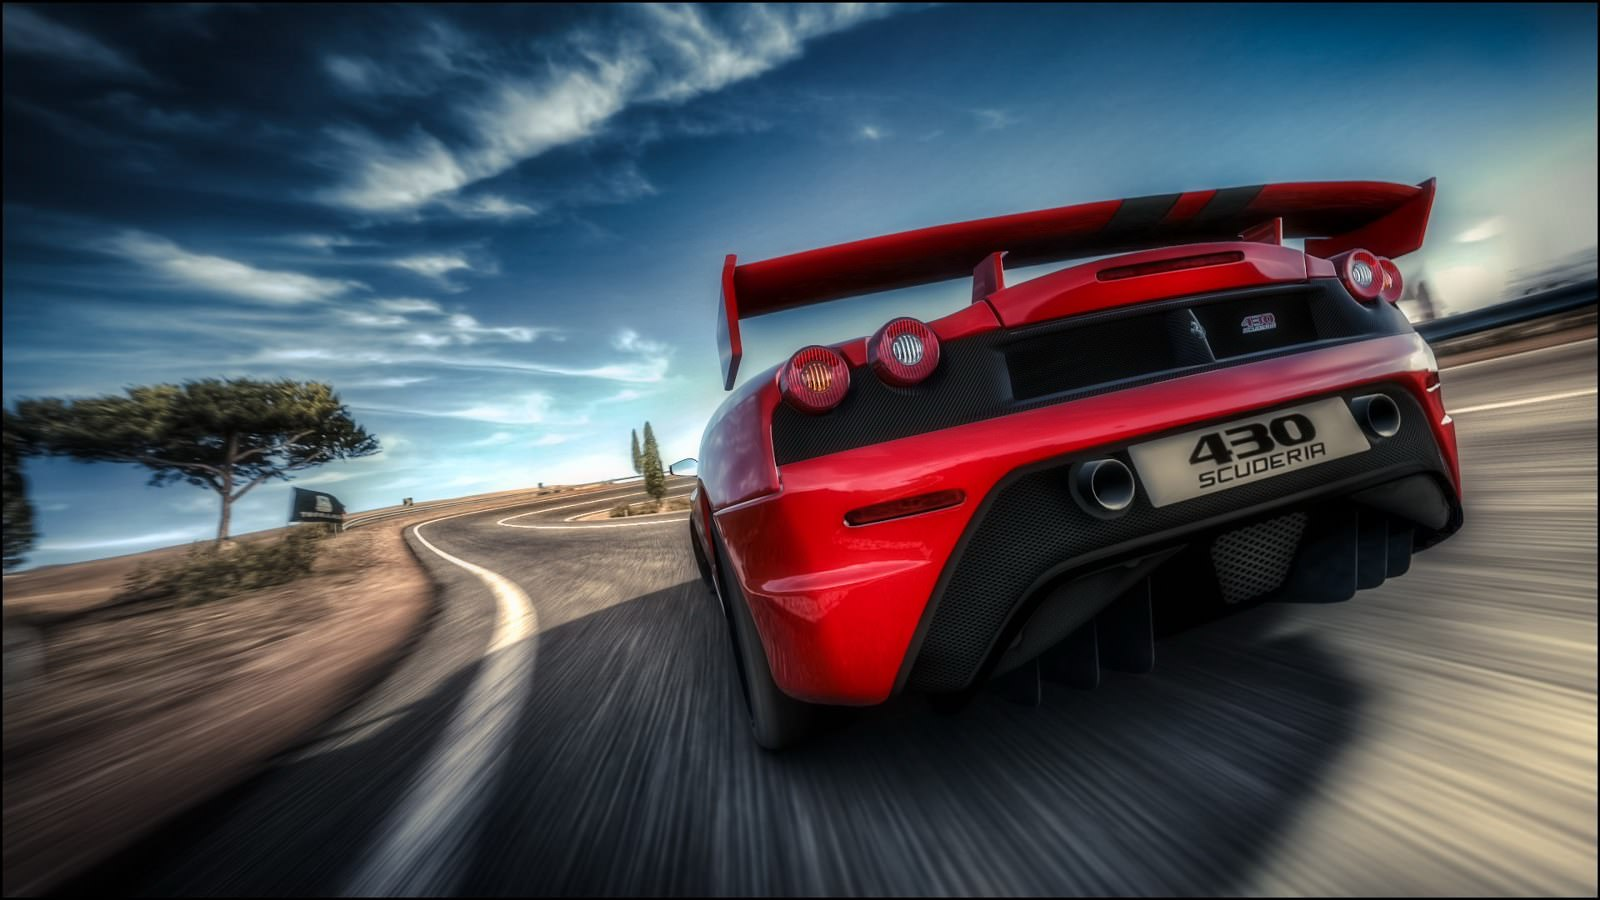 Hd Nfs Cars Wallpapers 185 Hd Car Backgrounds Wallpapers Images Pictures